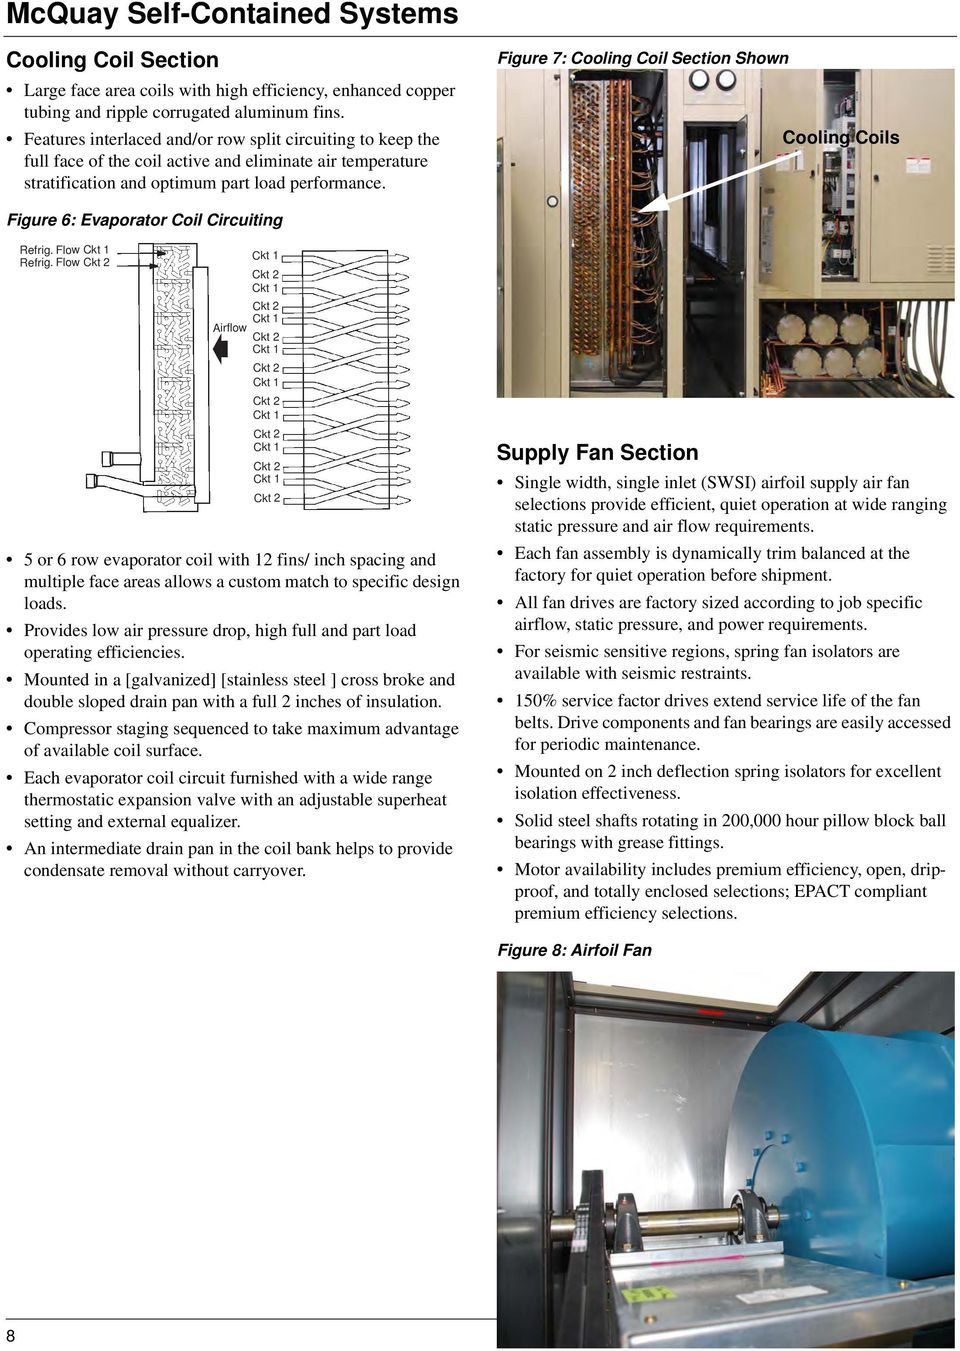 Catalog Self-Contained Air Conditioning Systems  Engineered